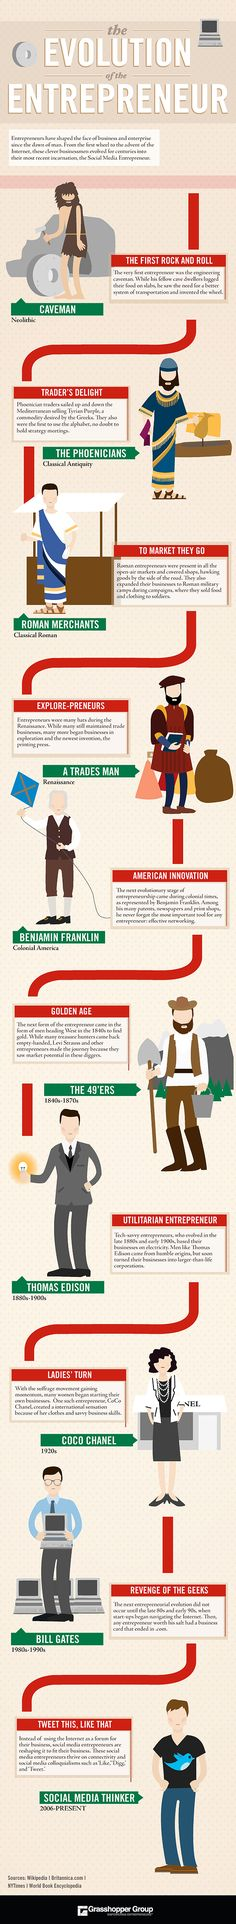 Evolution of the Entrepreneur , from cavemen to social media thinkers! (Great job on the infographic Grasshopper)